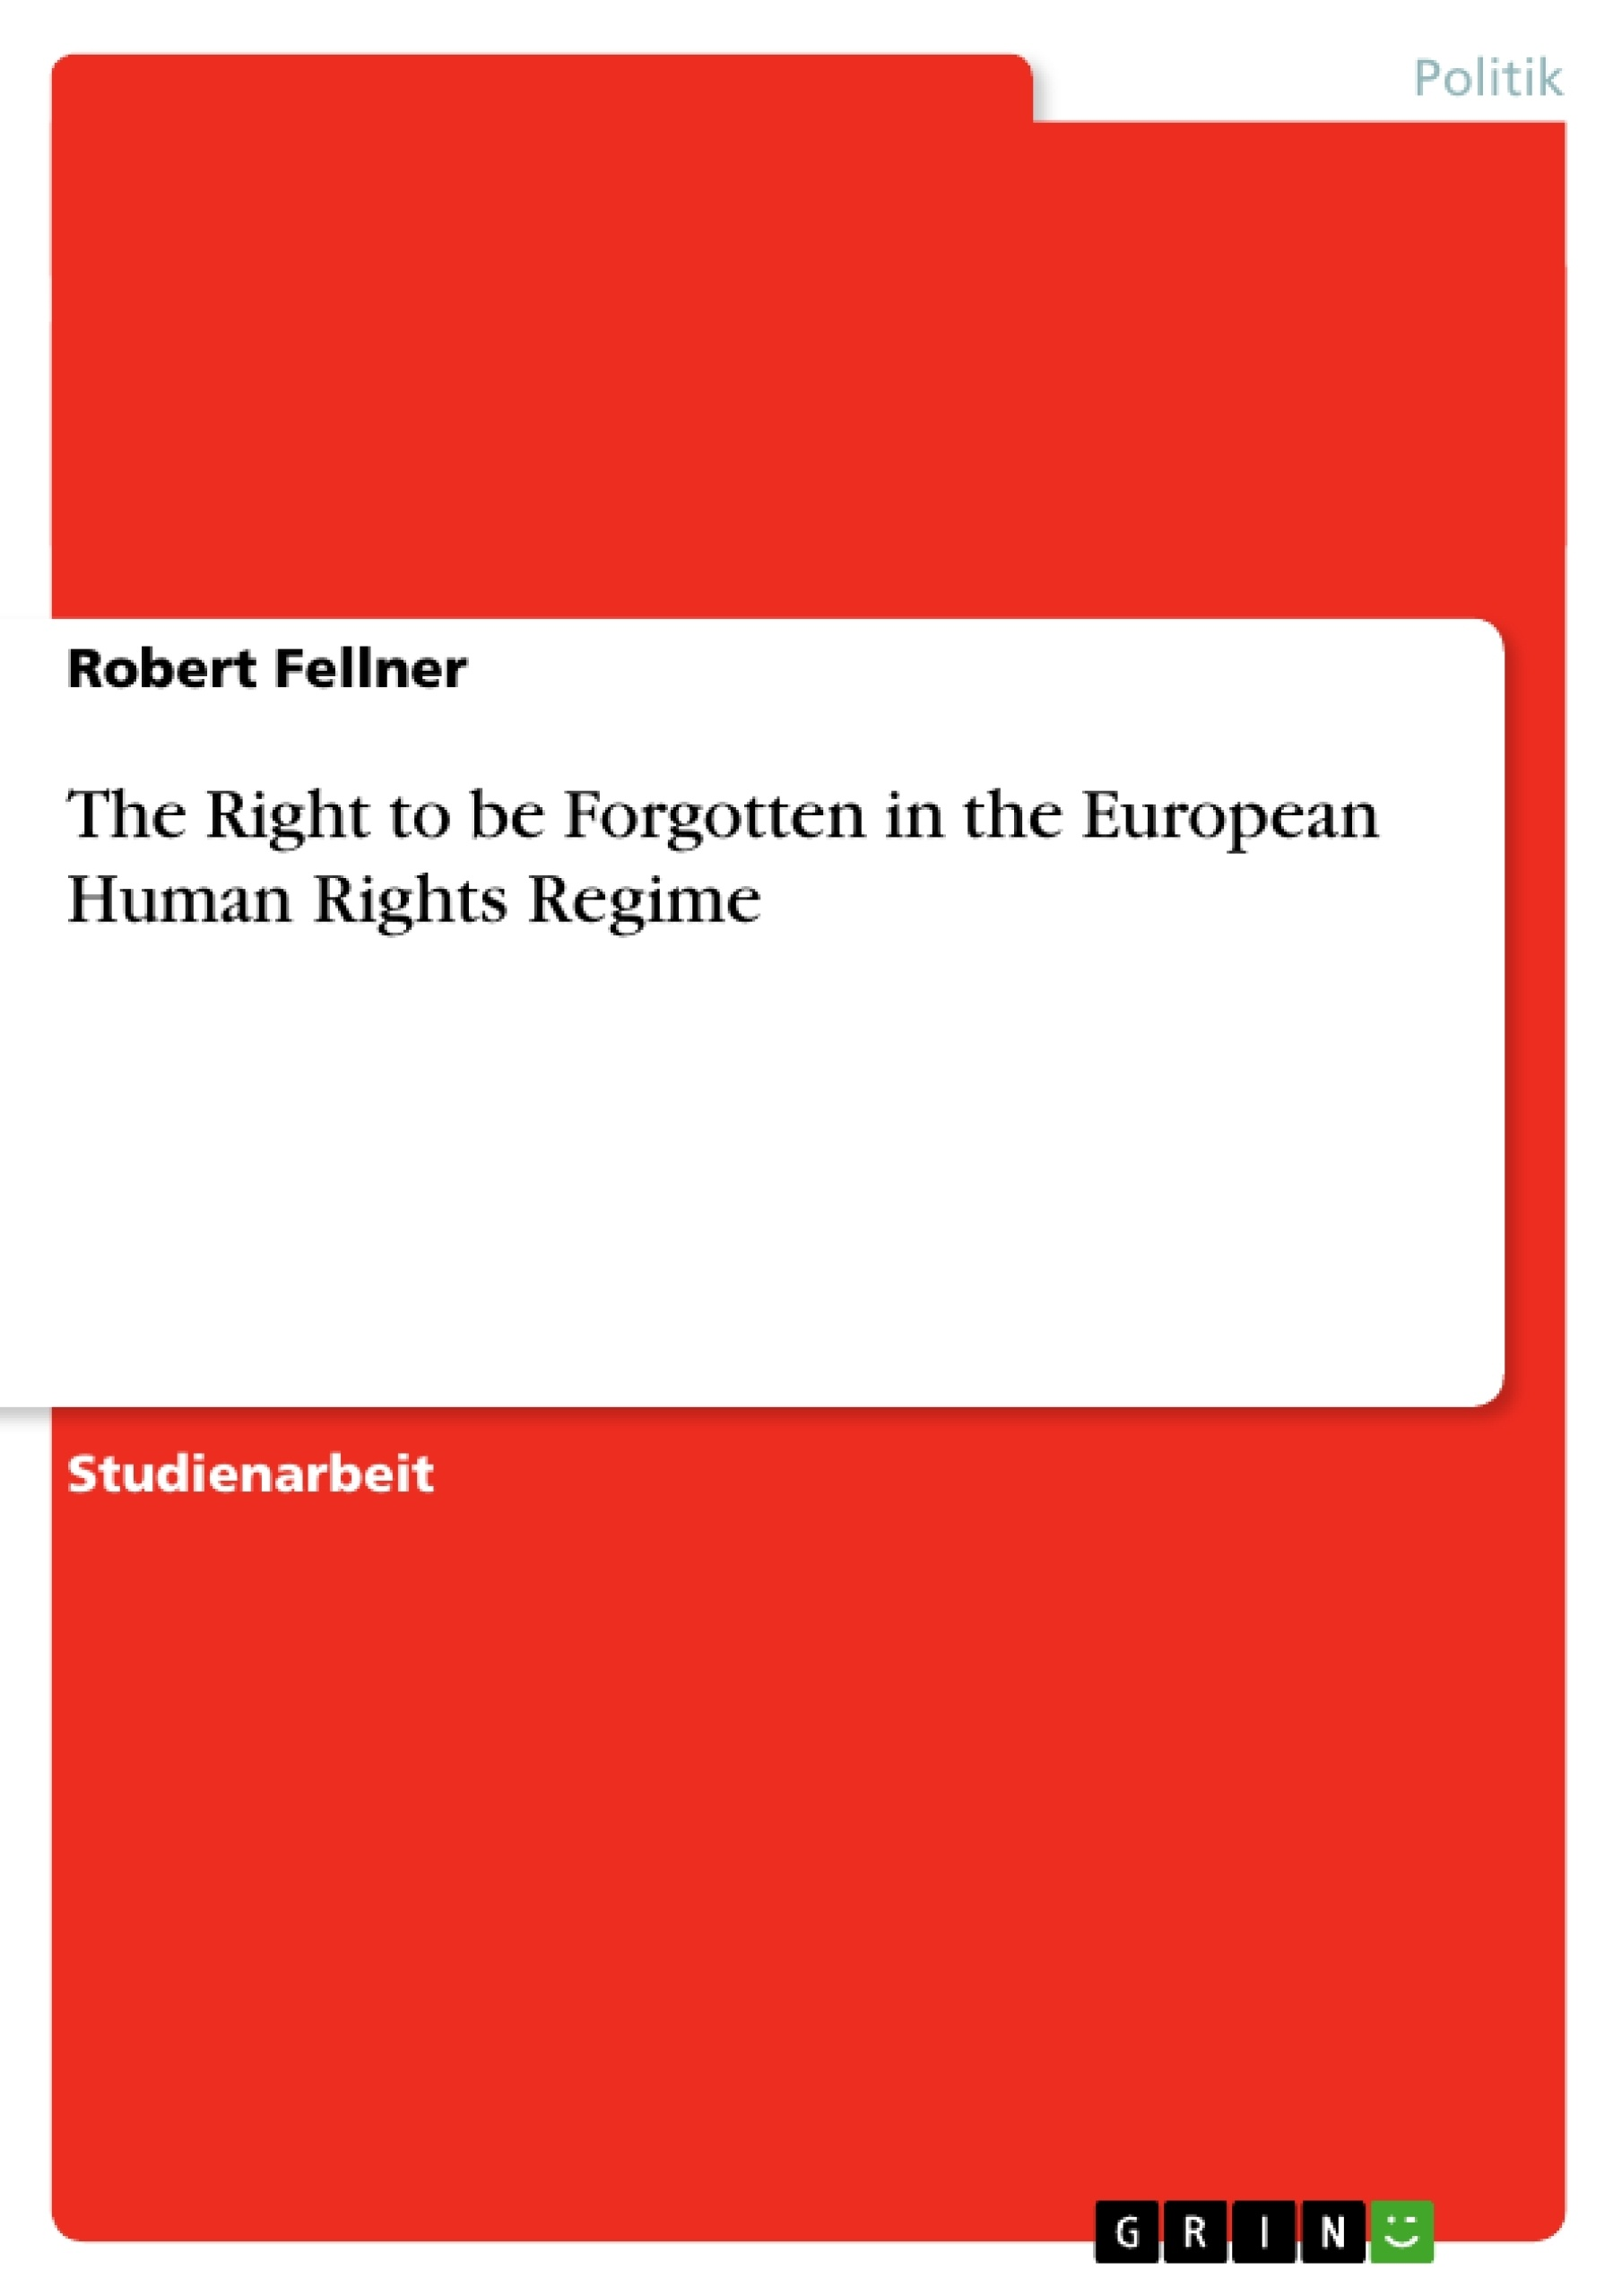 the right to be forgotten in the european human rights regime  the right to be forgotten in the european human rights regime masterarbeit hausarbeit bachelorarbeit veroffentlichen